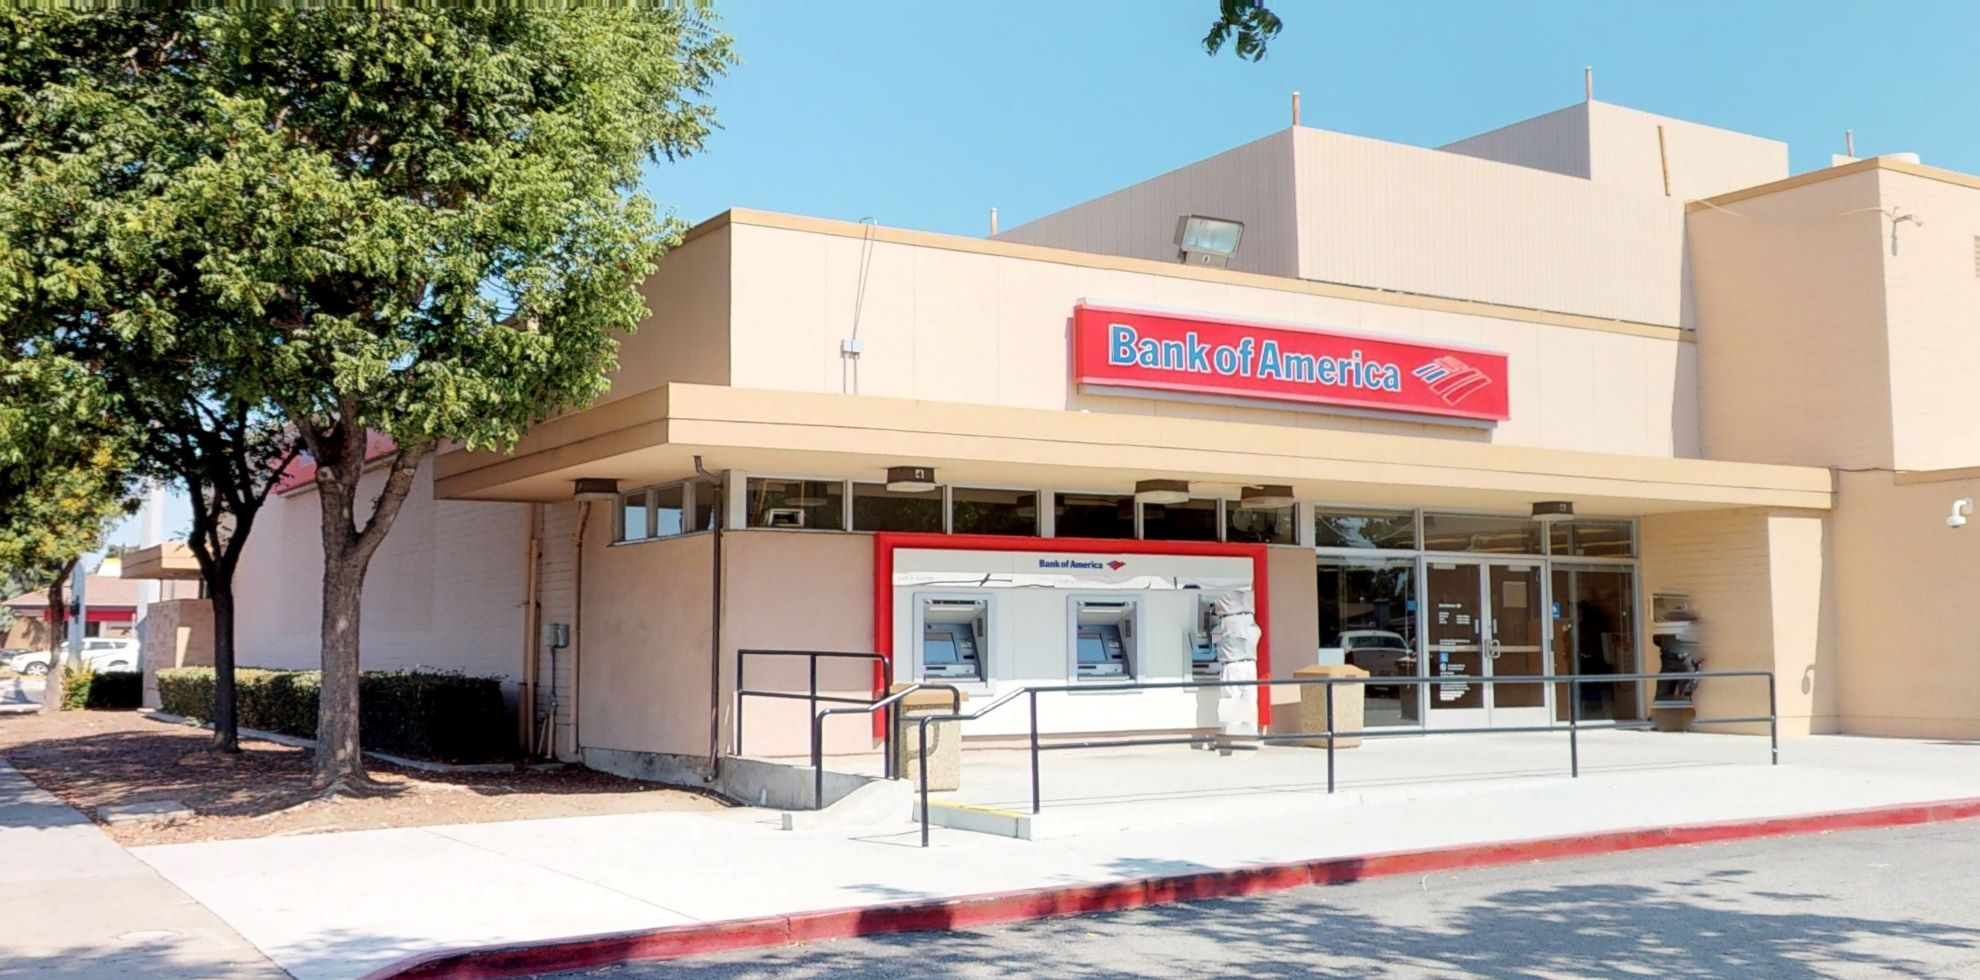 Bank of America financial center with walk-up ATM | 2300 Alum Rock Ave, San Jose, CA 95116